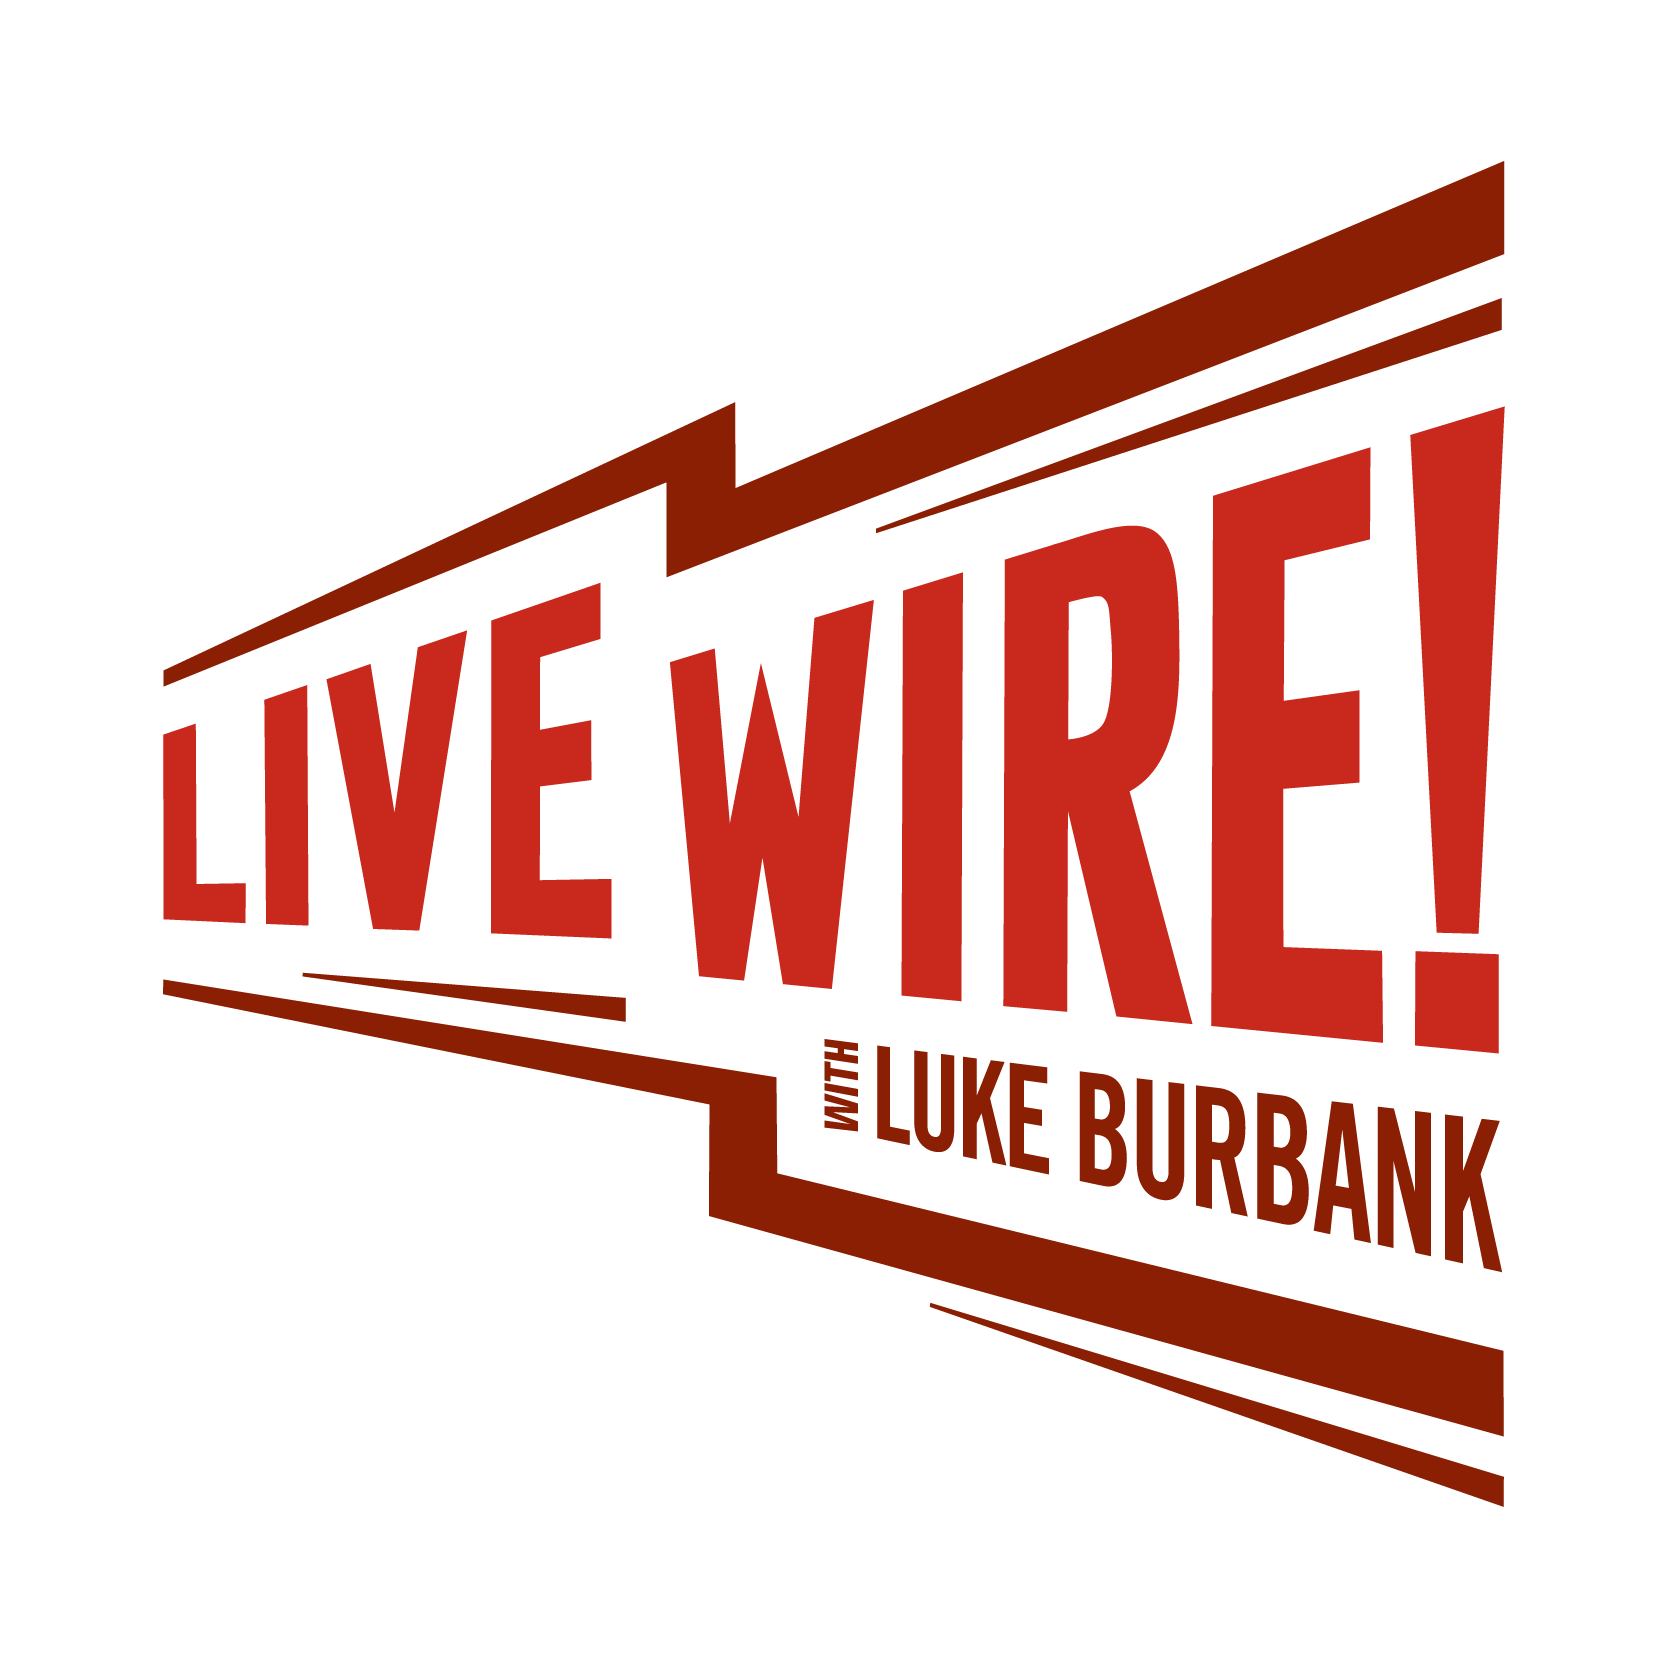 LIVE WIRE   Harnessing the intimacy of the theater experience and the power of the public airwaves to enliven, inspire, and engage audiences - connecting communities through live music and performances, unpredictable conversation, and original comedy.